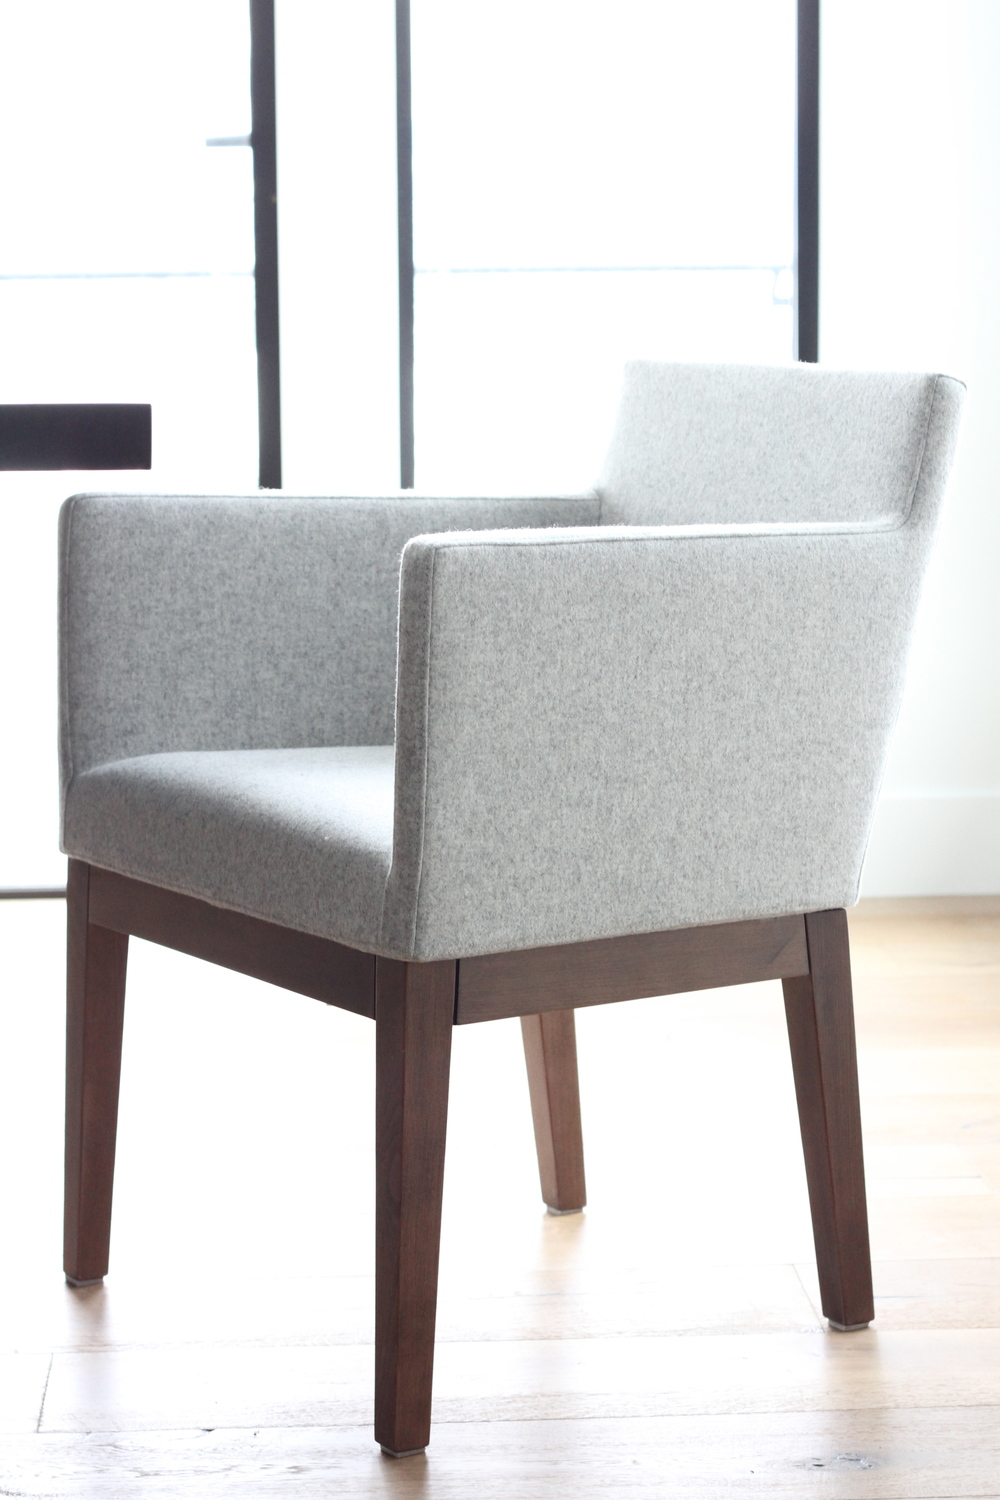 Soho Concept Harput Dining Room Chair.